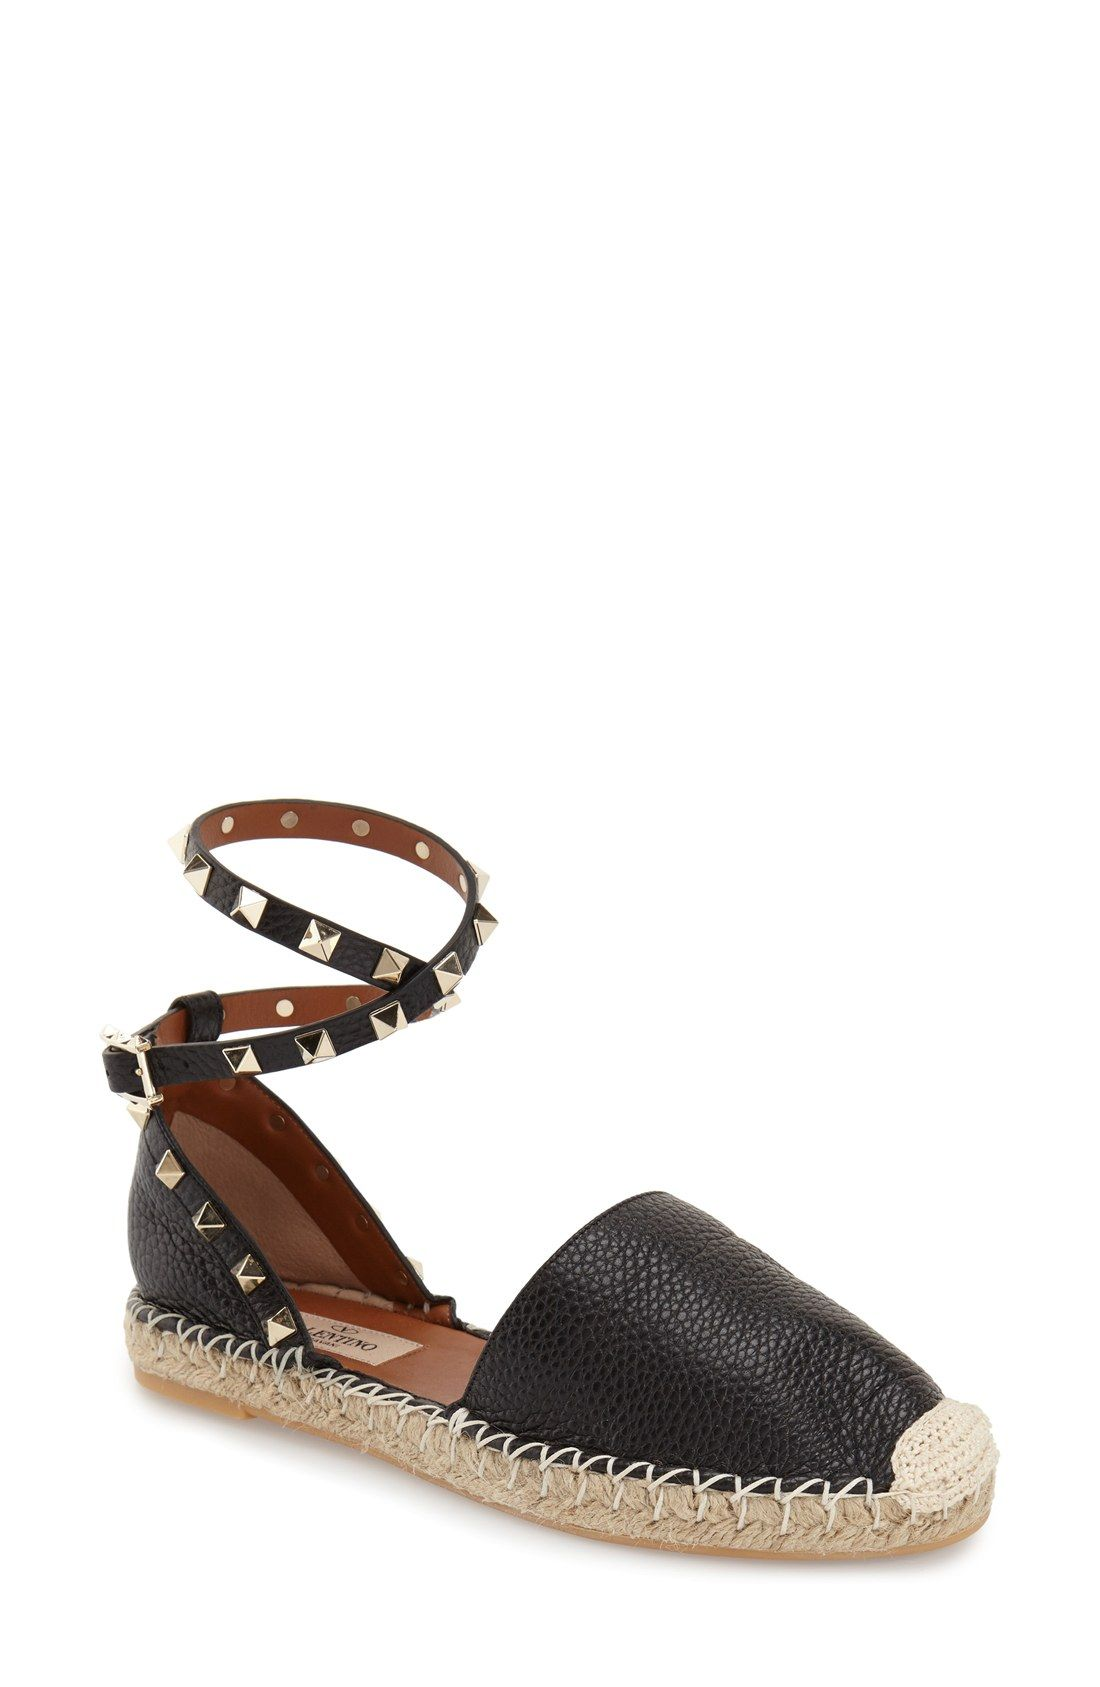 This chic espadrille sandal that includes an ankle strap with gold pyramid  studs will be the